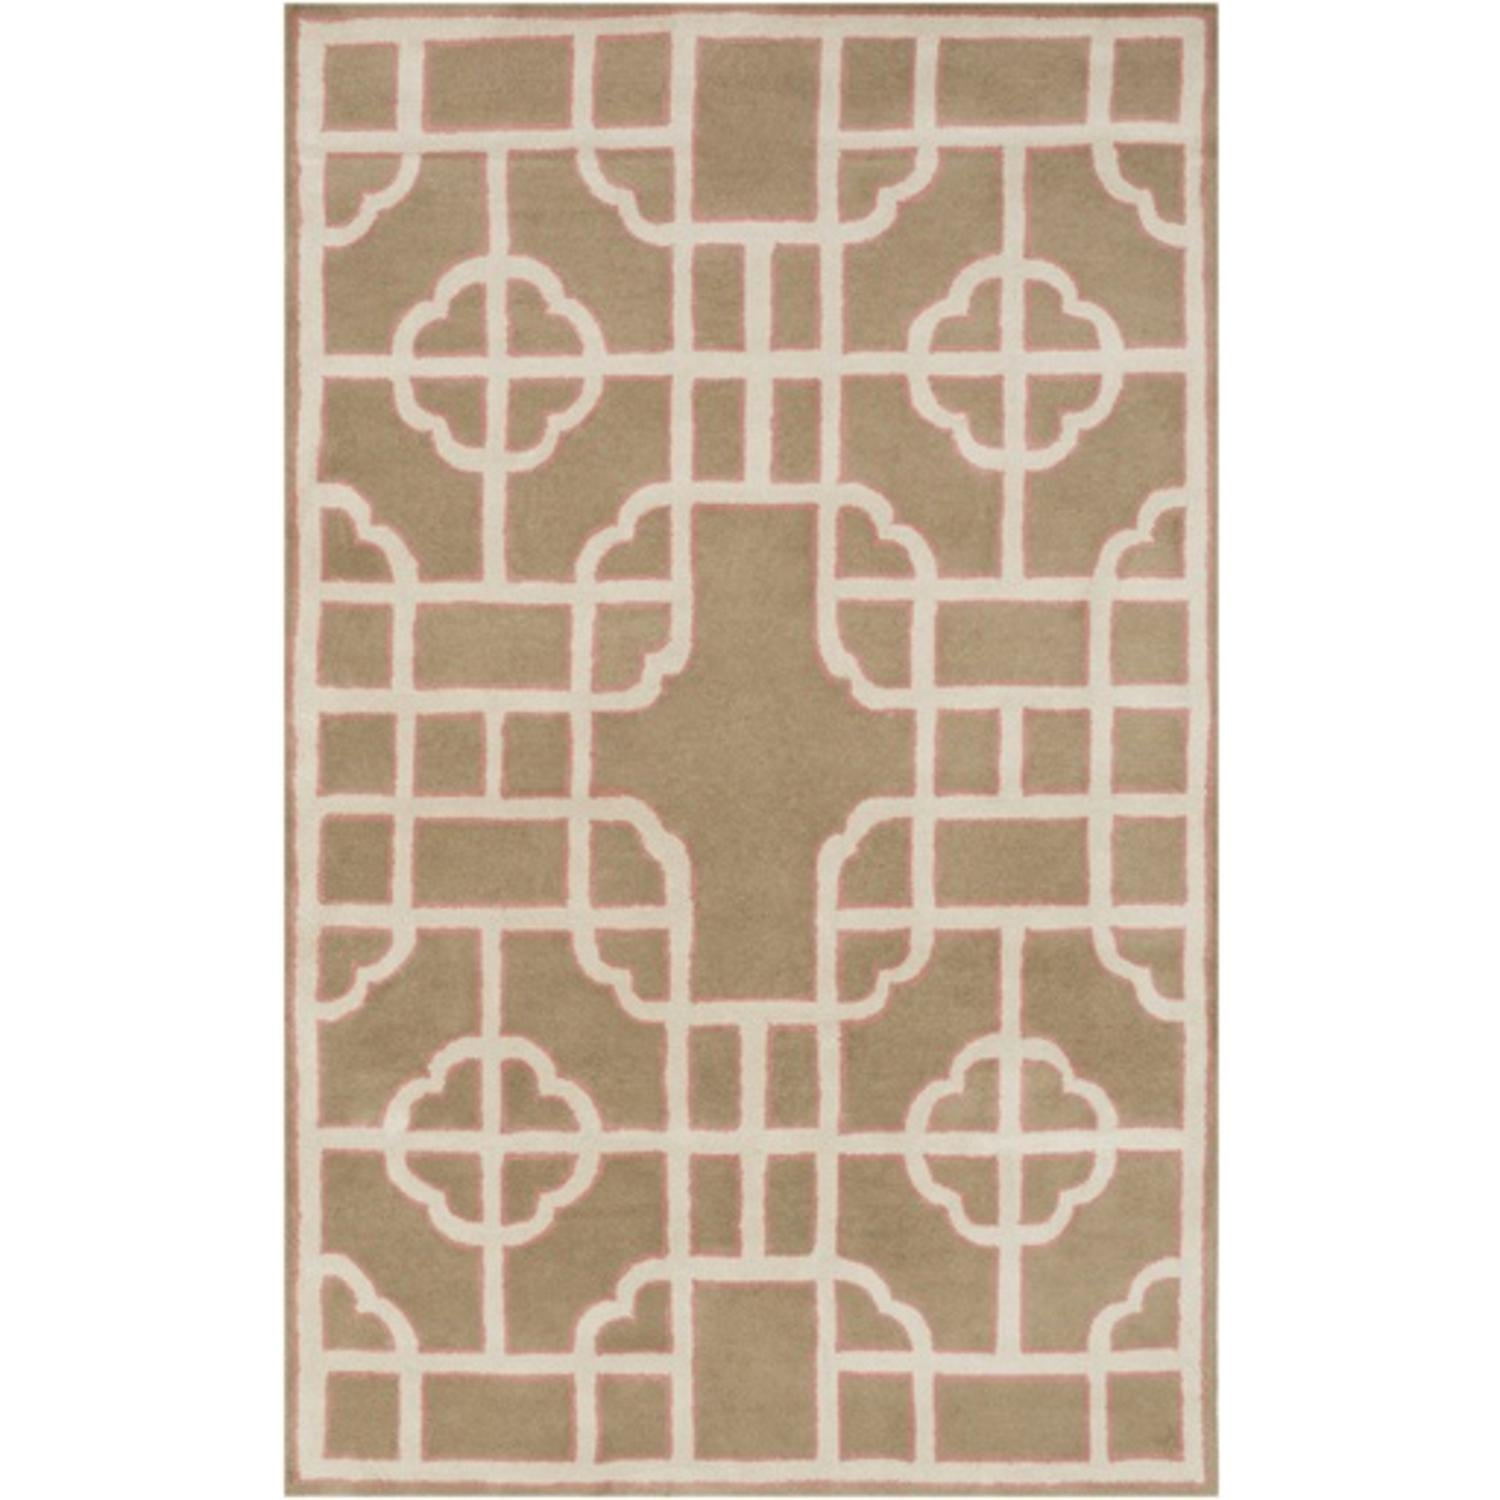 8' x 11' Mosaic Delight Cream White and Tuscan Tan Hand Tufted Area Throw Rug